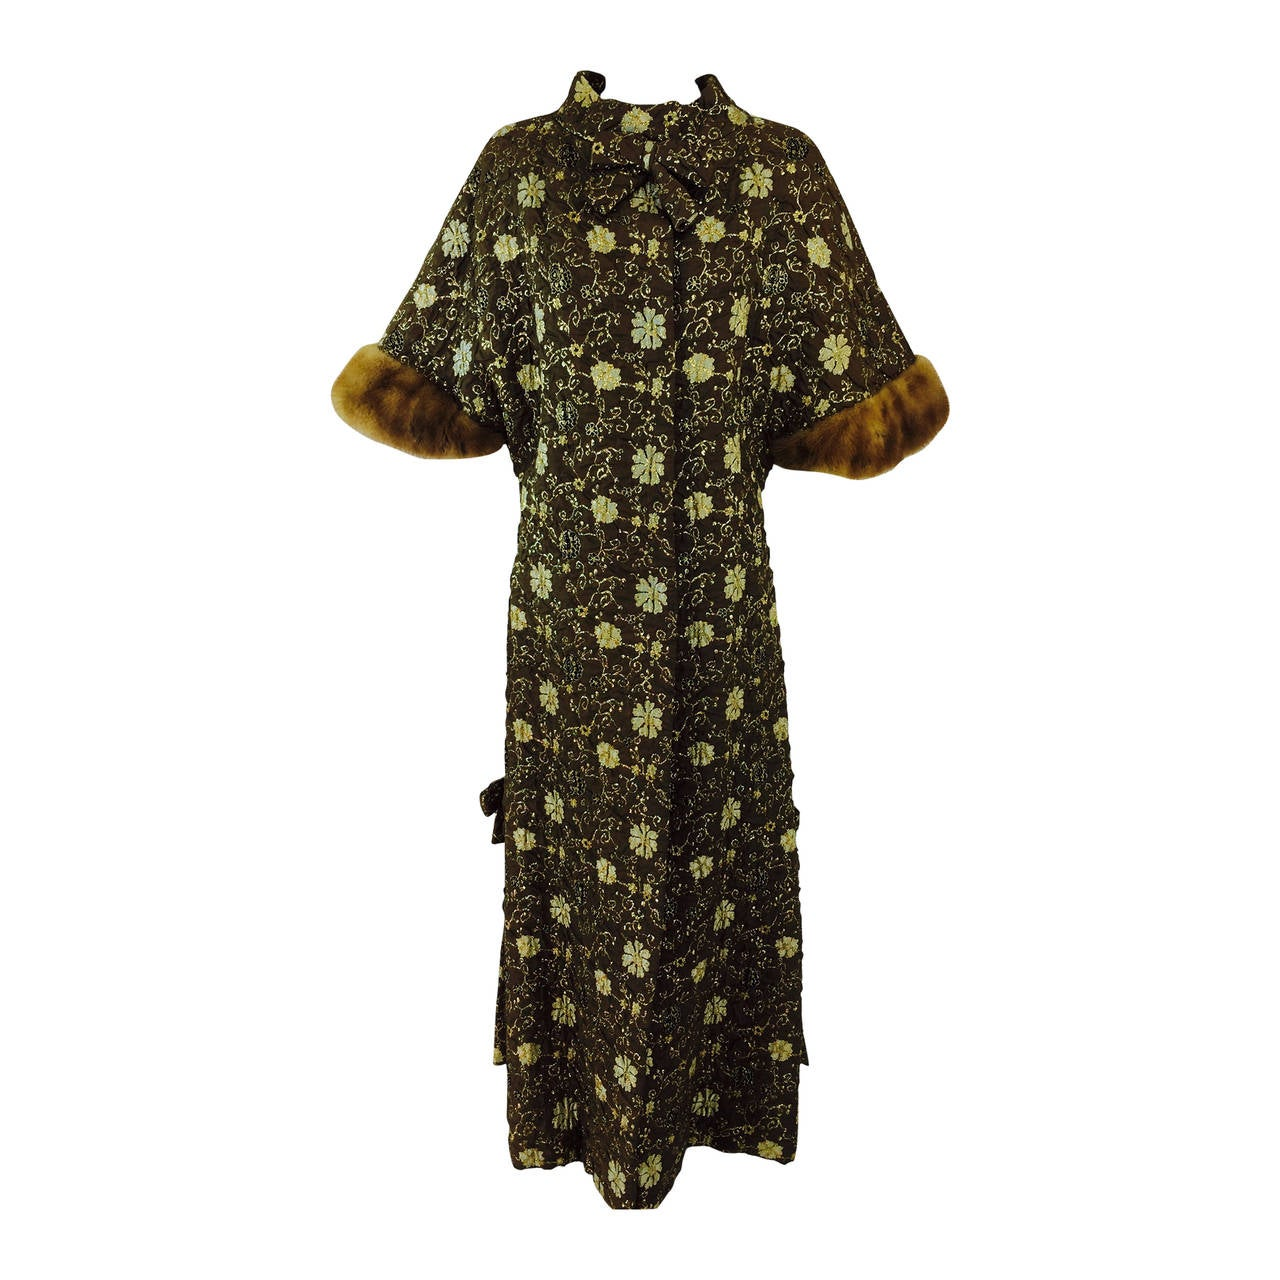 Bob Bugnand for Sam Friedlander mink cuff embroidered evening coat 1960s 1